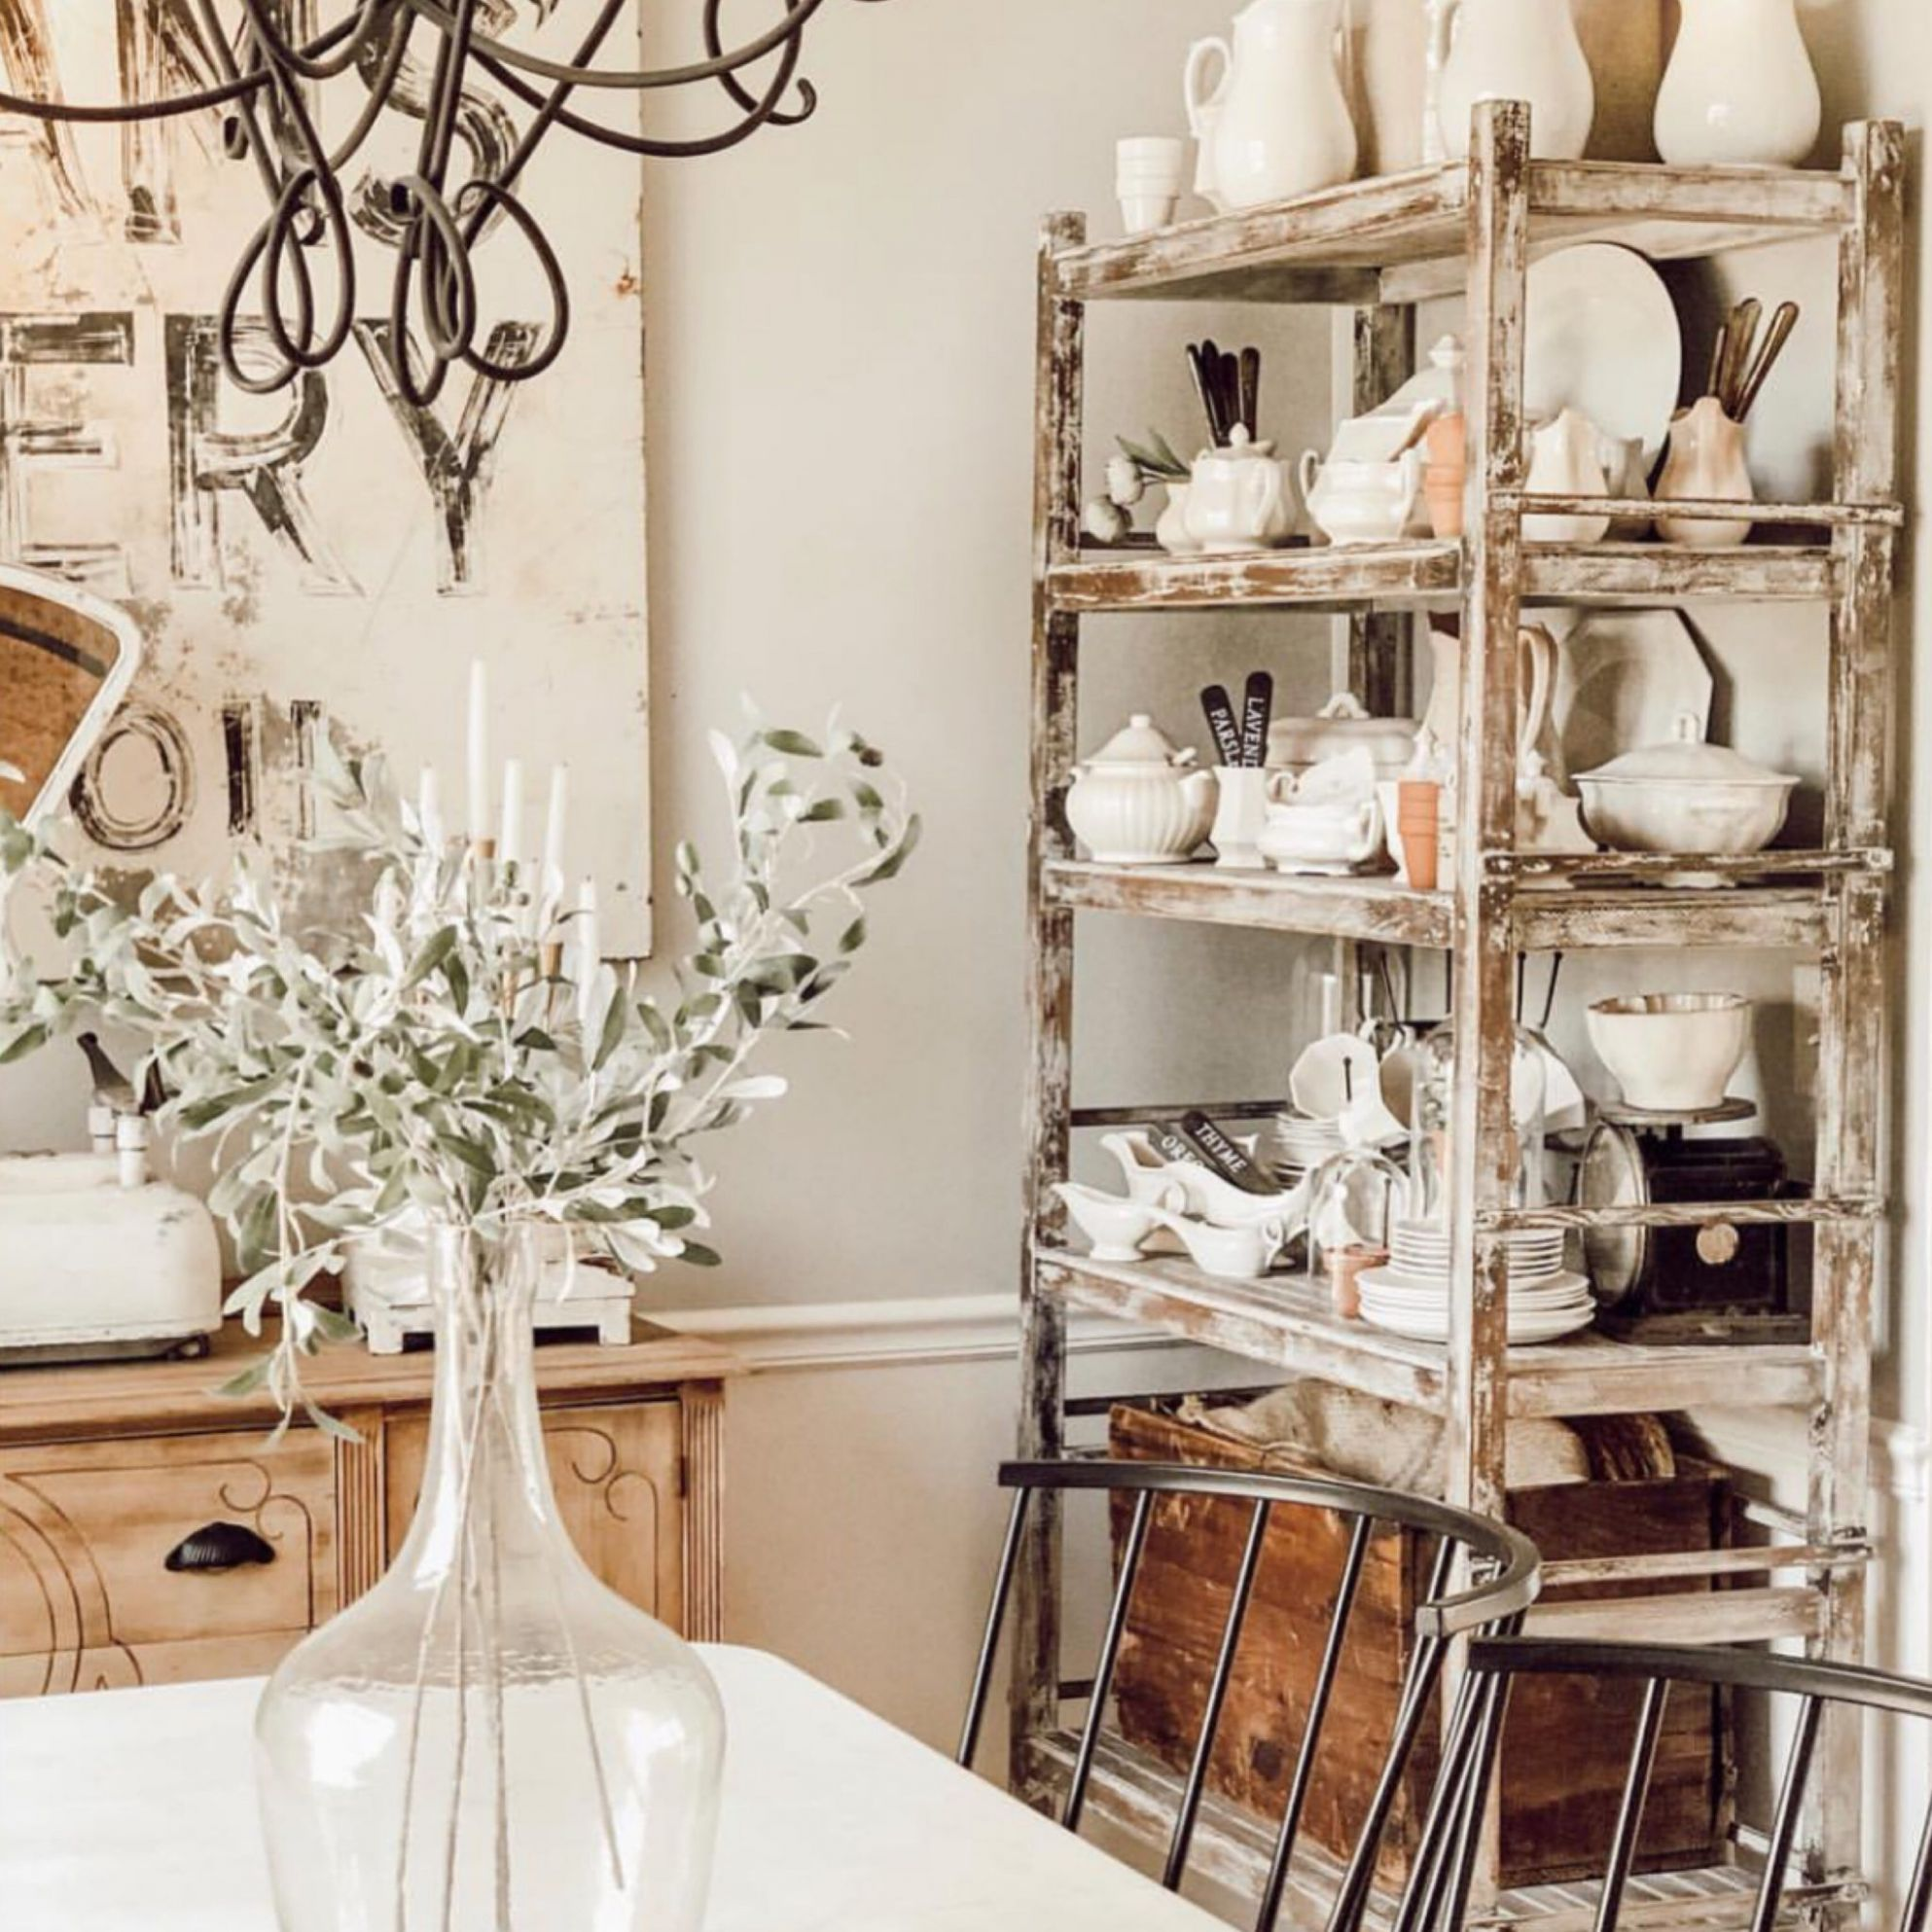 8 of the BEST Home Decor Blogs that will inspire you. | Home ..